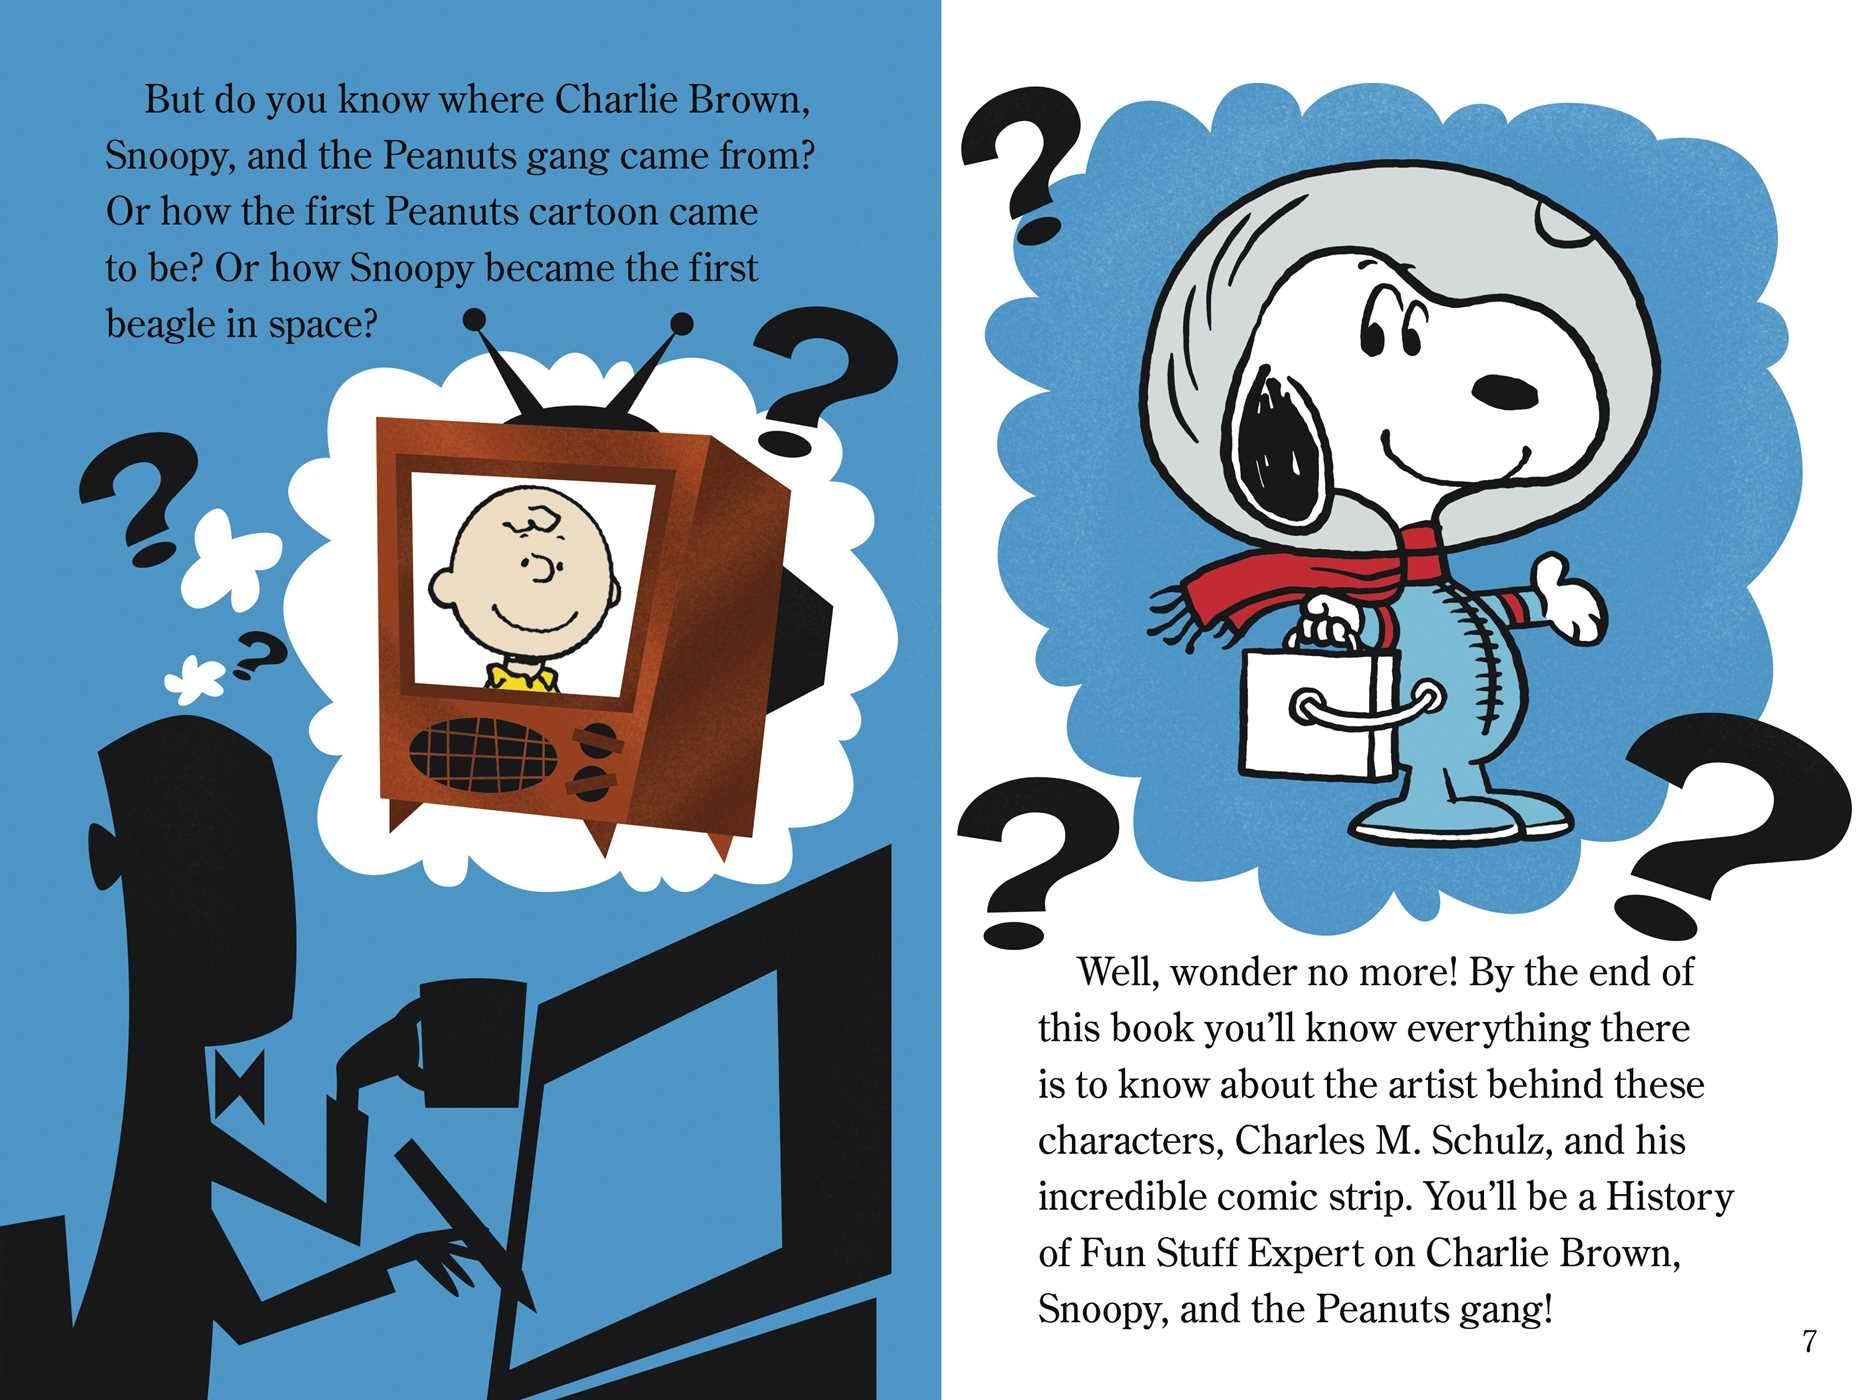 The great american story of charlie brown snoopy and the peanuts gang 9781481495530.in01